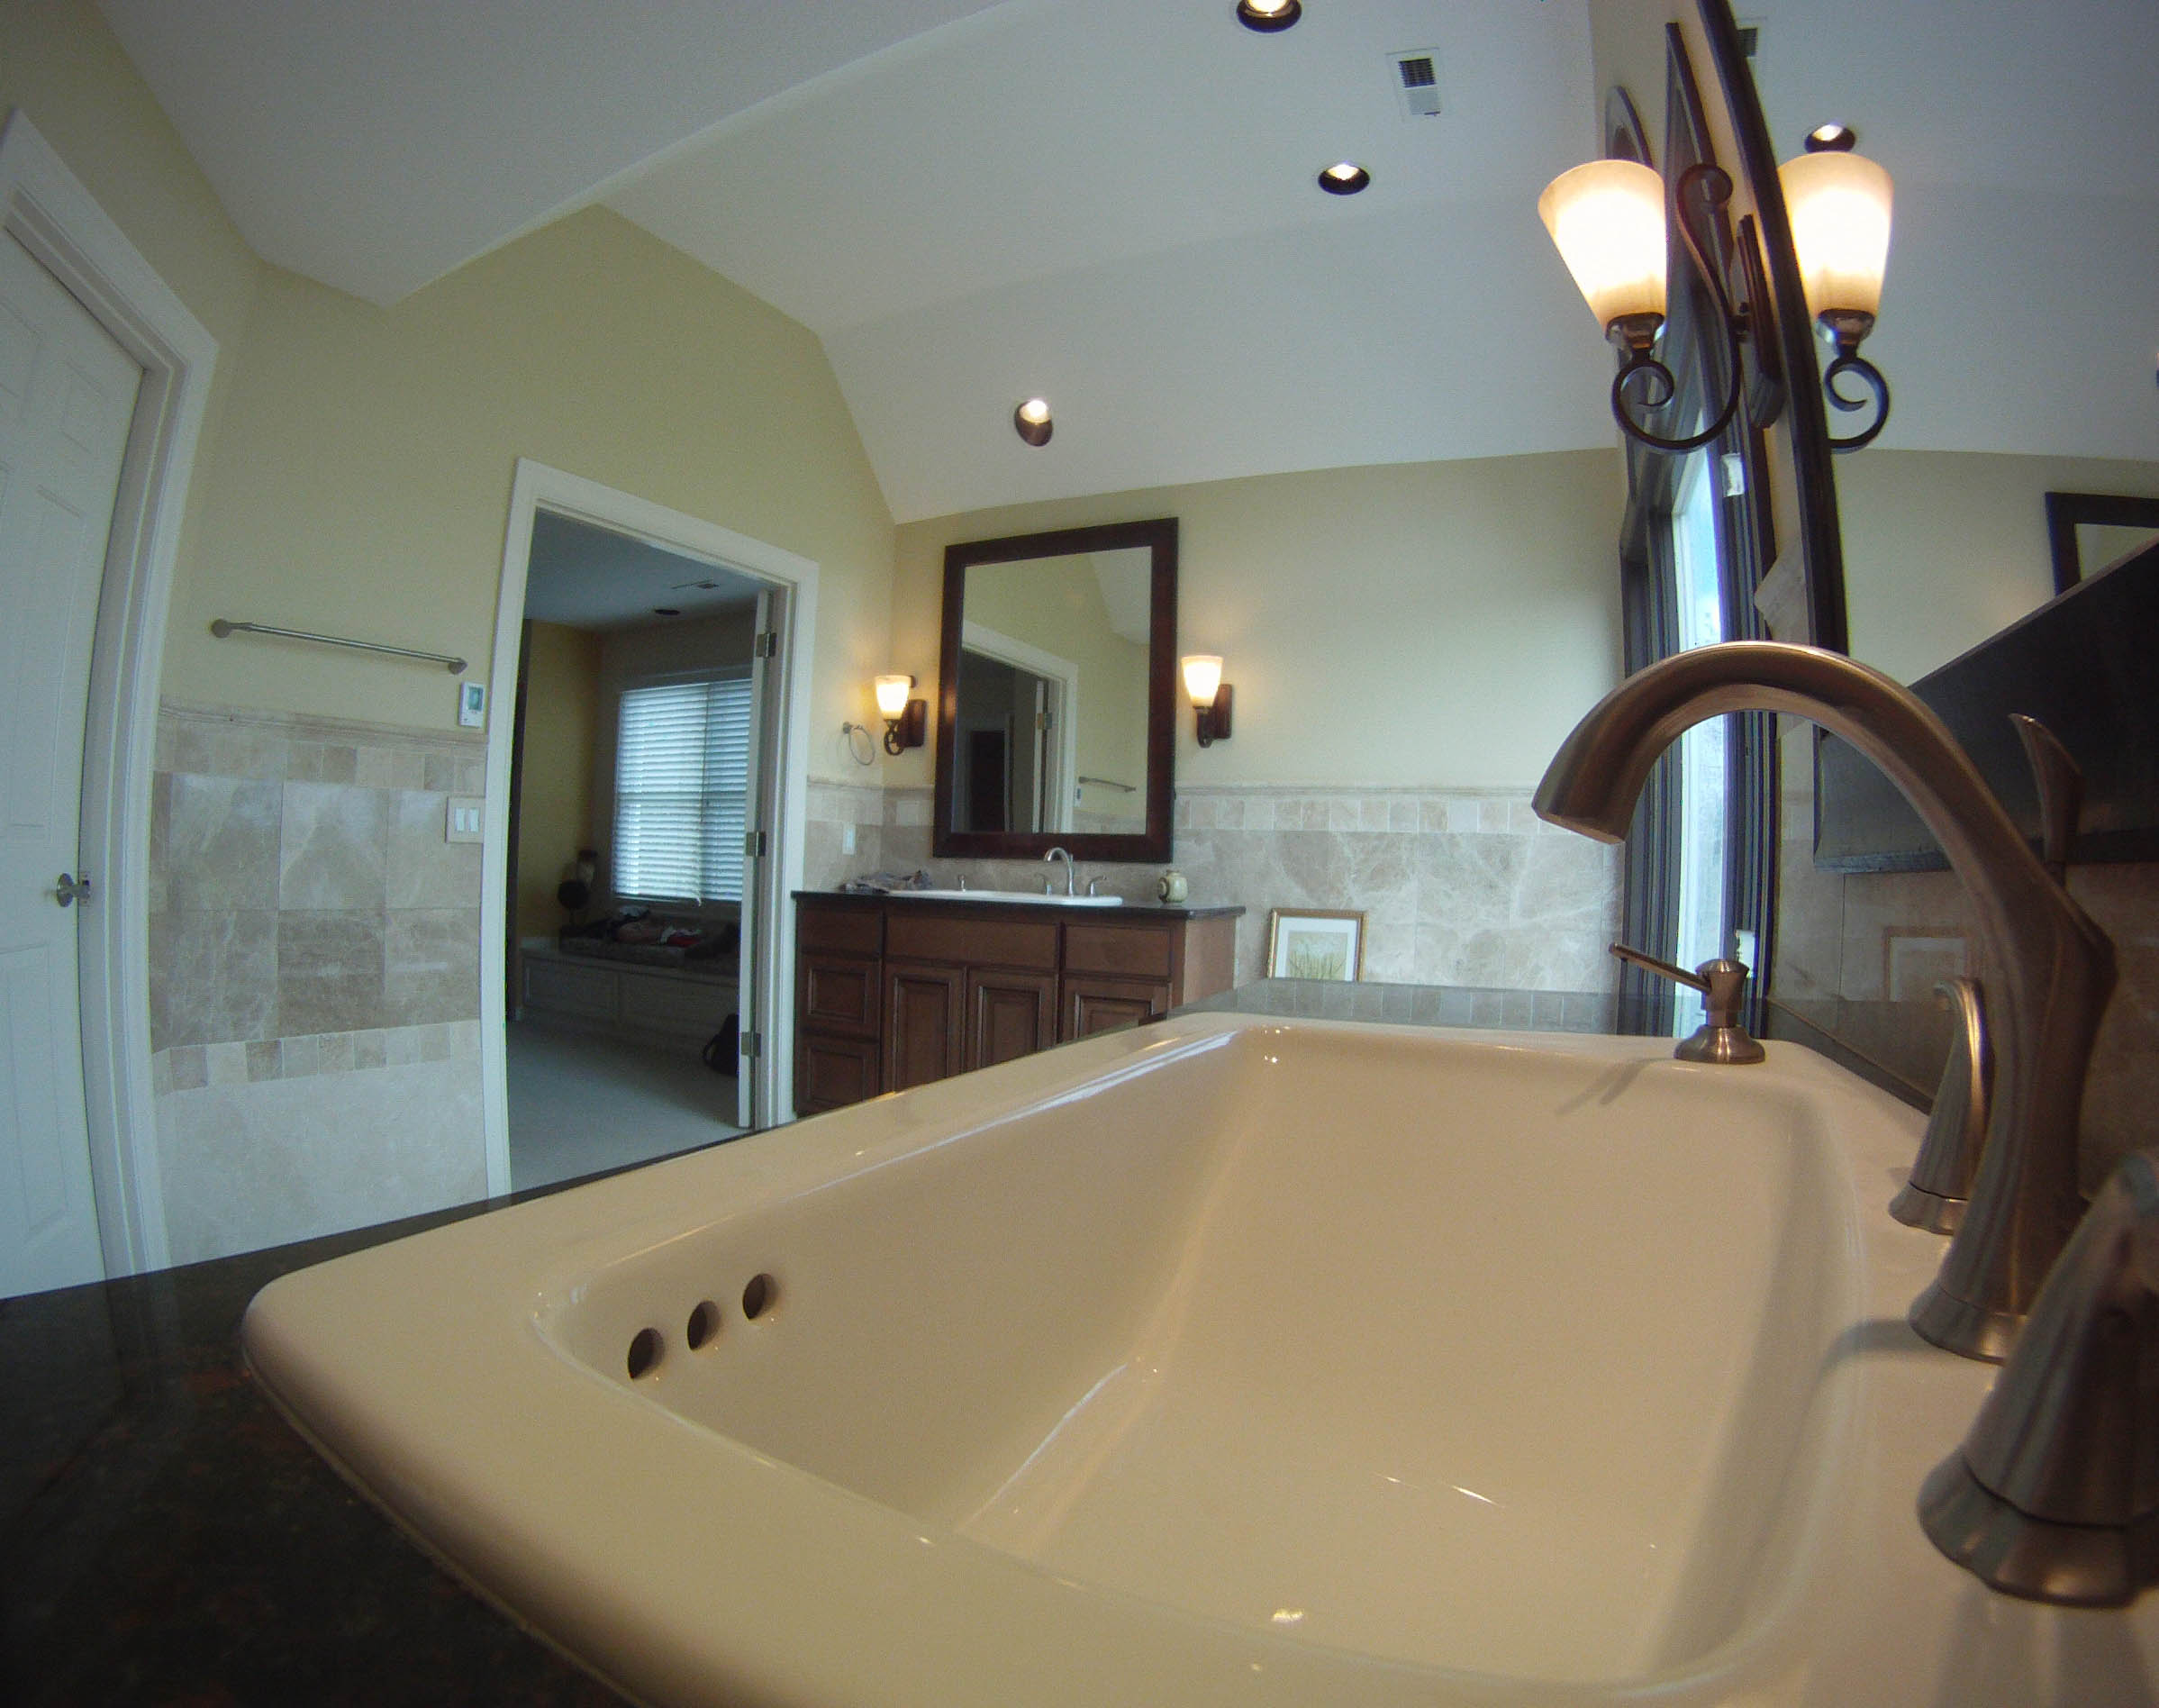 3 low cost bathroom remodel ideas affinity home design for How much to refurbish a bathroom